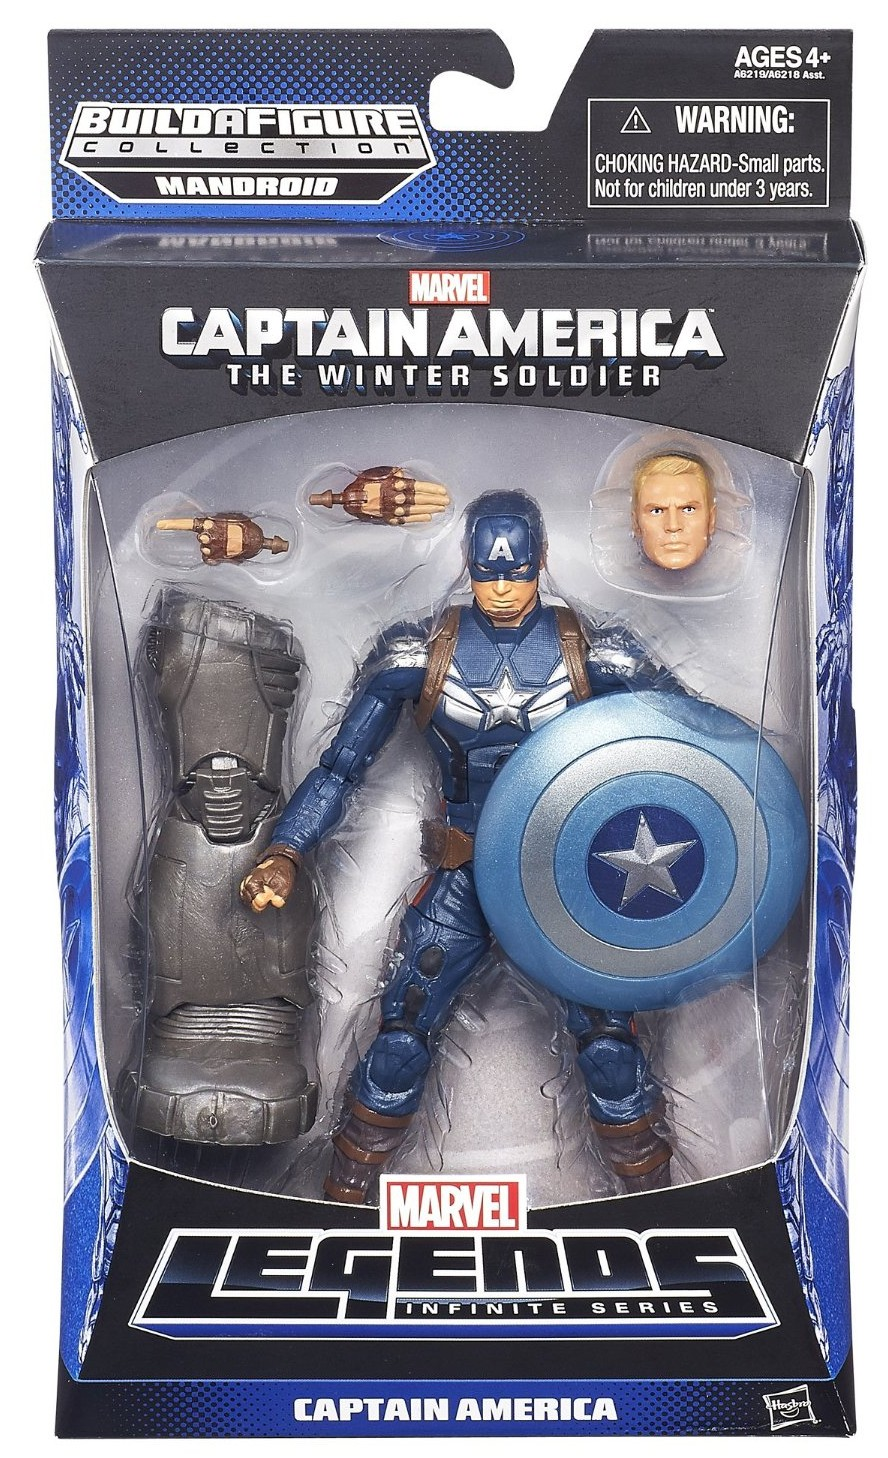 Captain-America-Marvel-Legends-Captain-America-Figure-6-Inches-e1416947273746